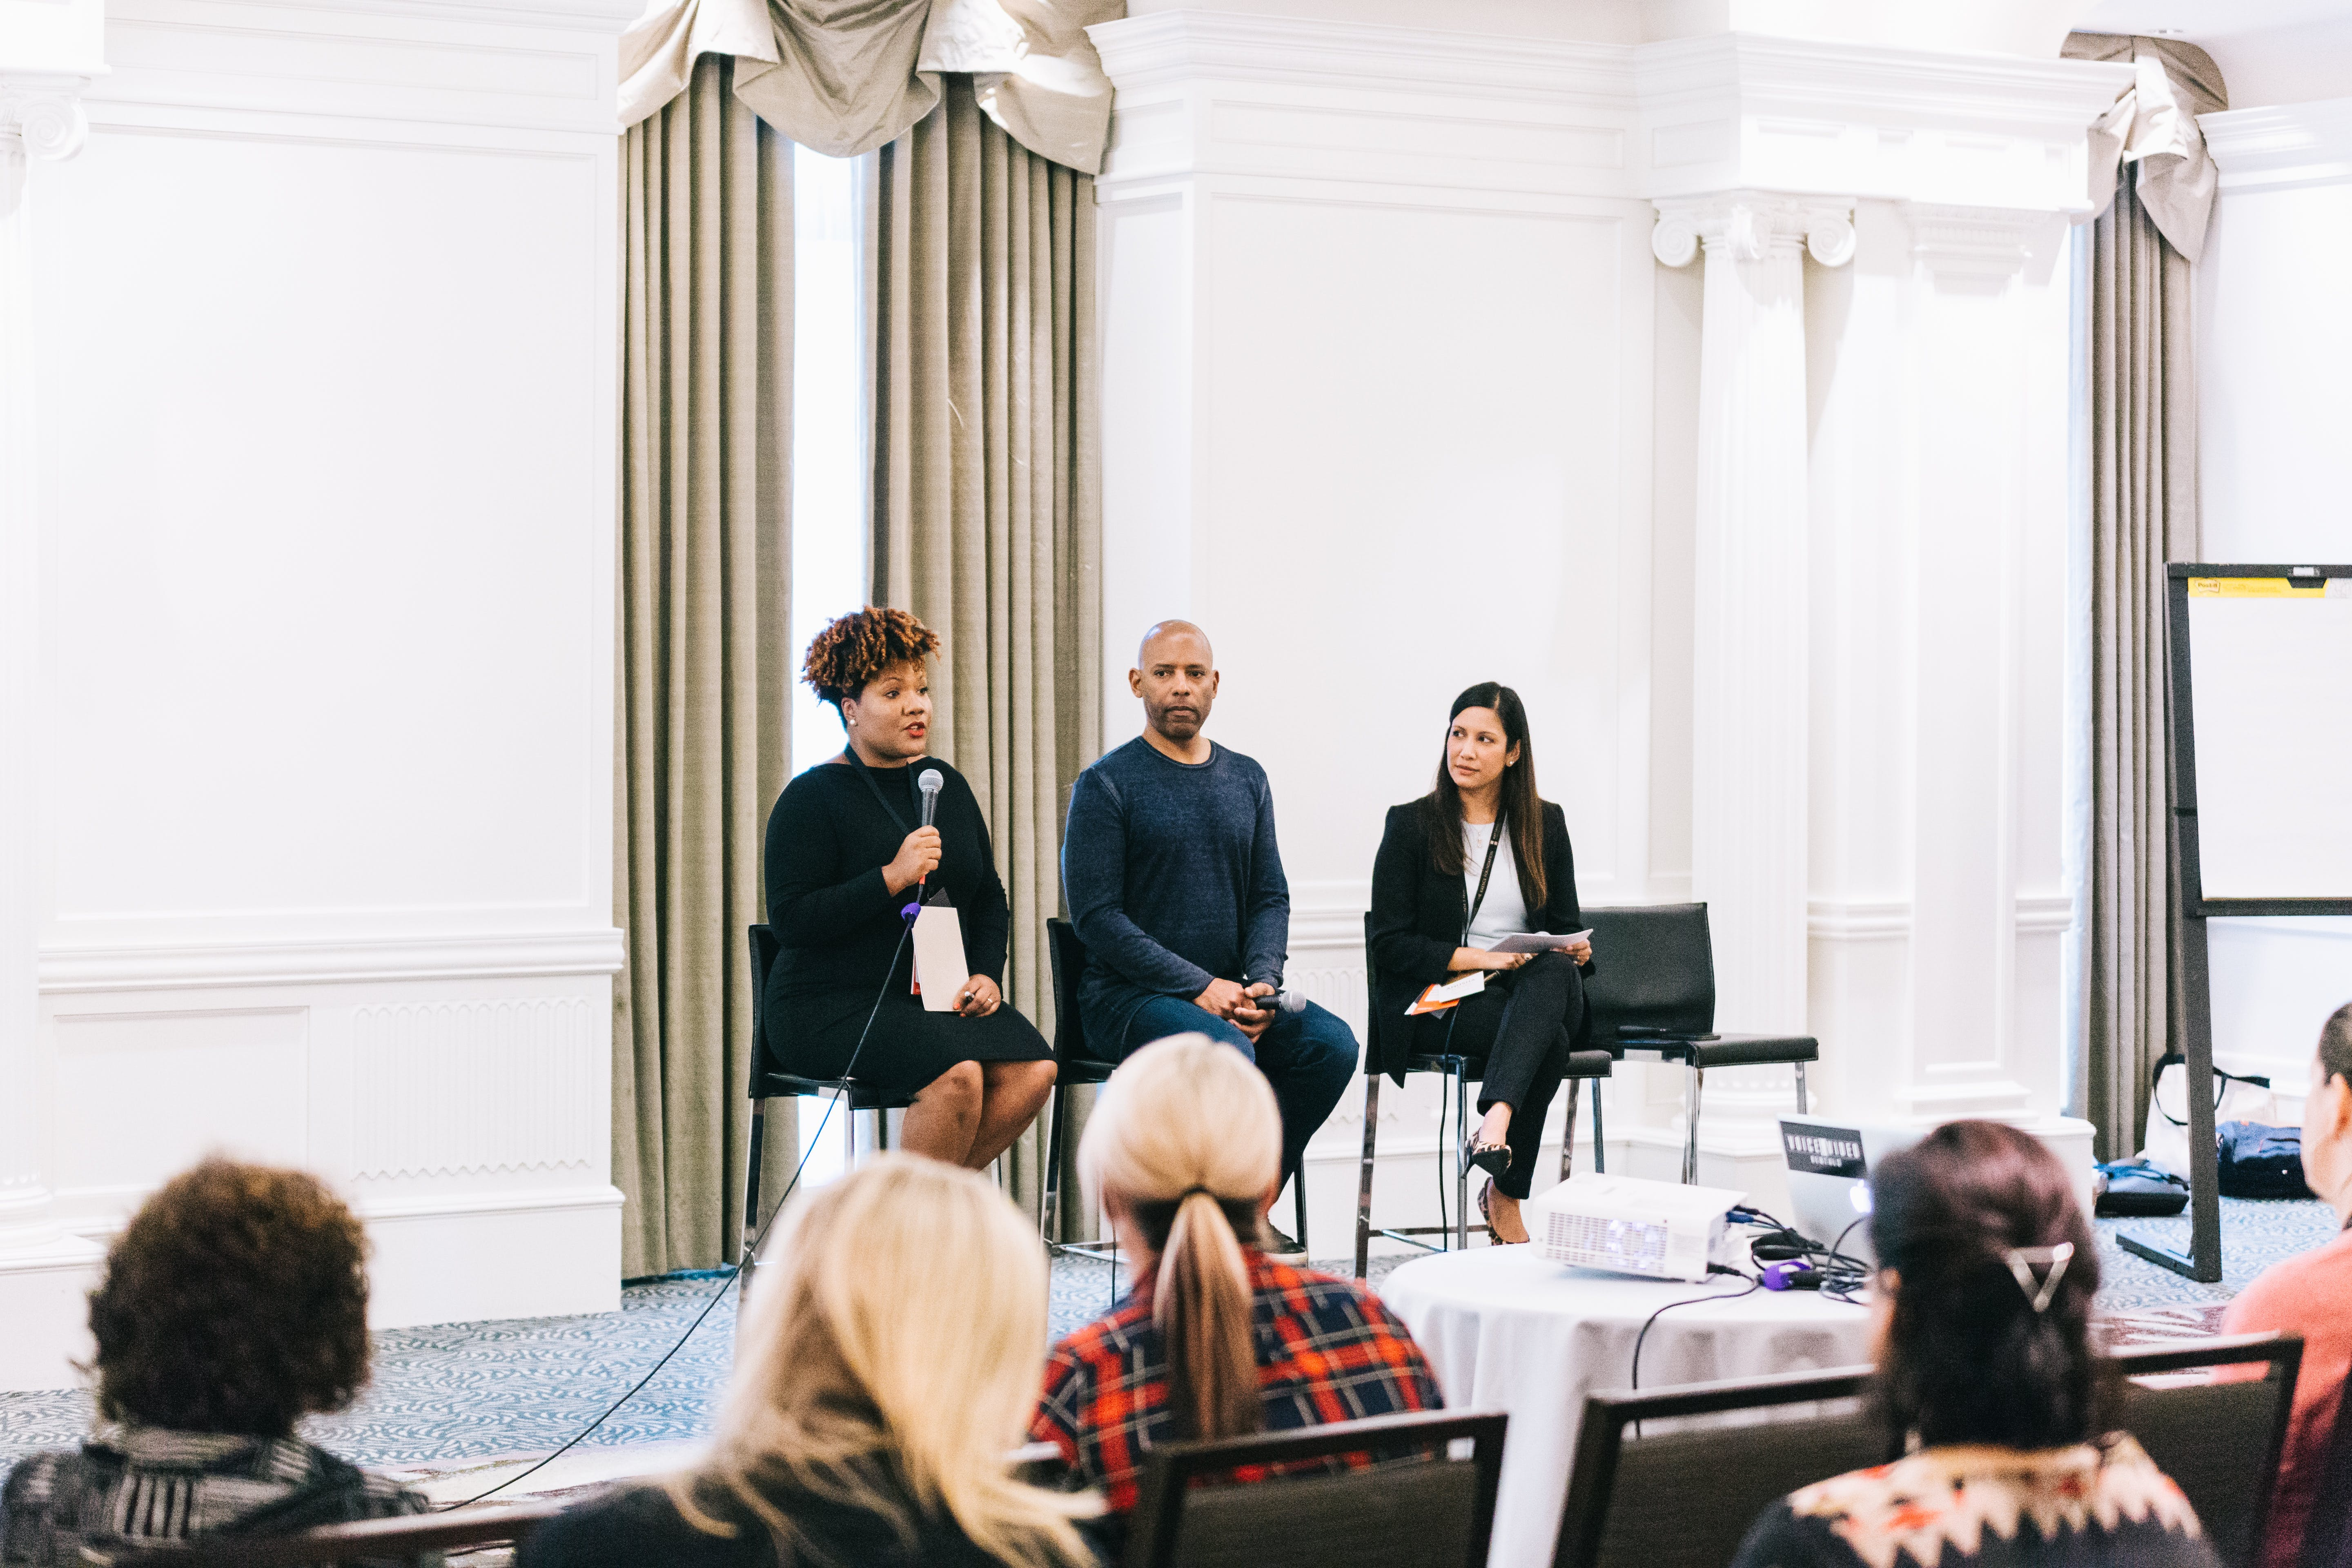 """<p>Tonya Mosley, Leslie Miley and Anusha Alikhan discuss diversity and inclusion at ComNet 2016. <a href=""""https://www.flickr.com/photos/thecomnetwork/29651815864/in/album-72157664334746601/""""><em>Photo by The Communications Network.</em></a></p>"""